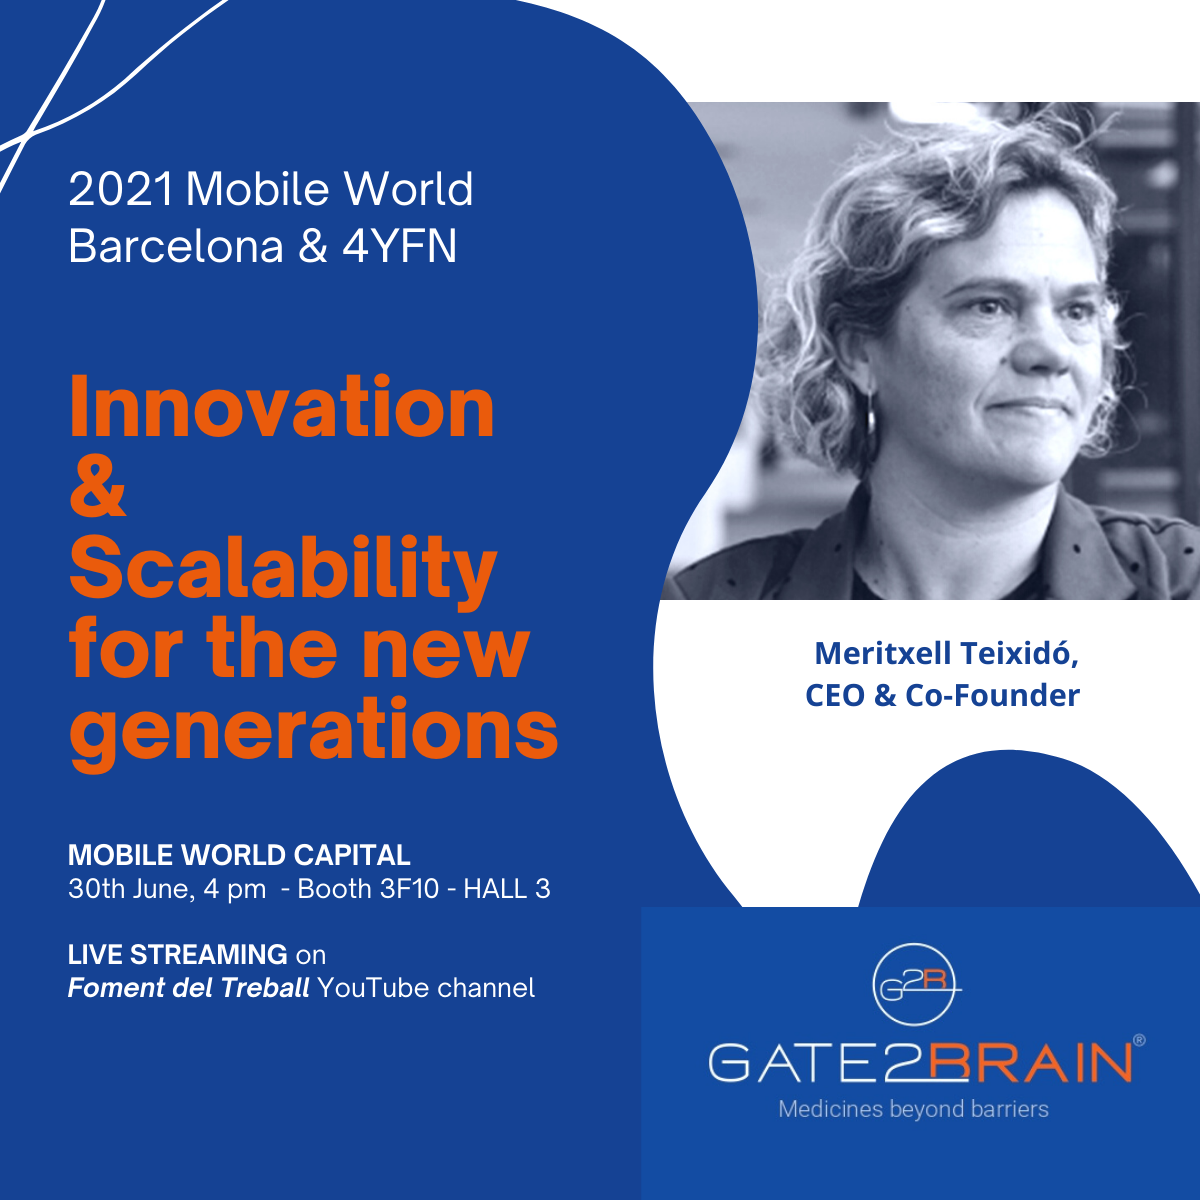 Innovation & Scalability for the new generations